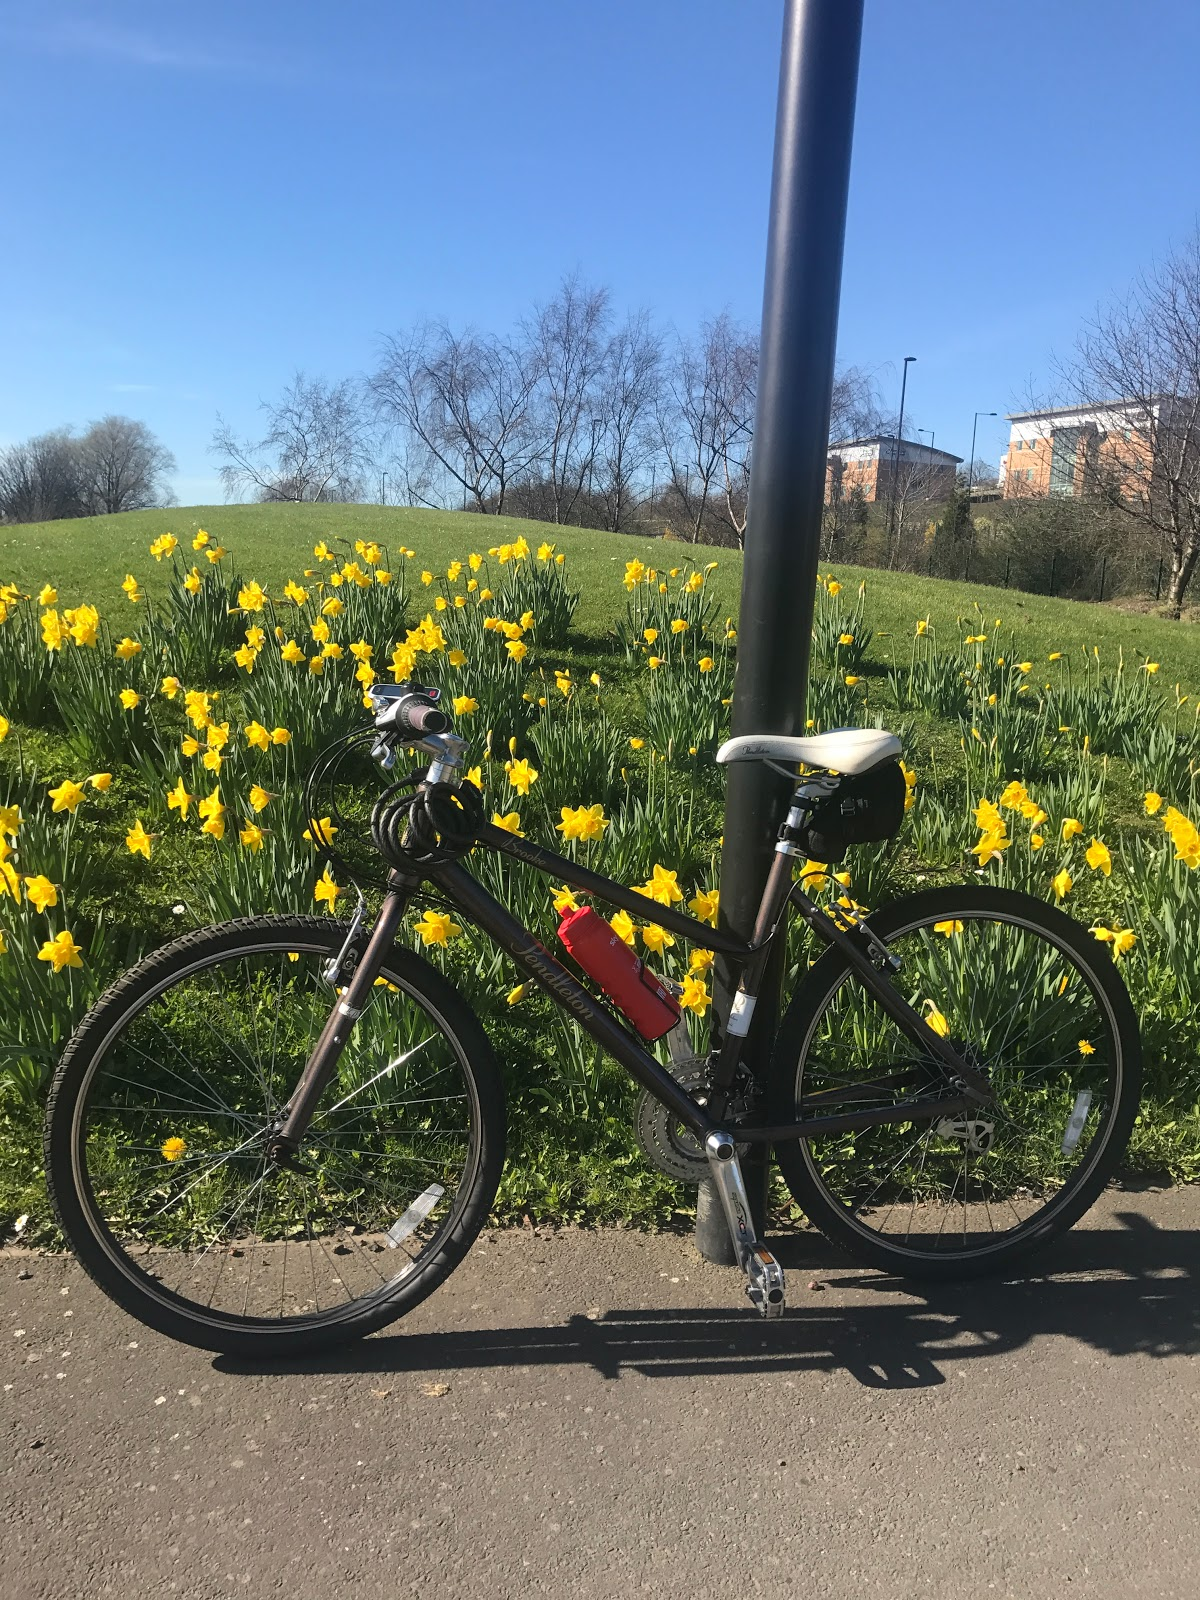 Cycle Diary: My first ride out this year!